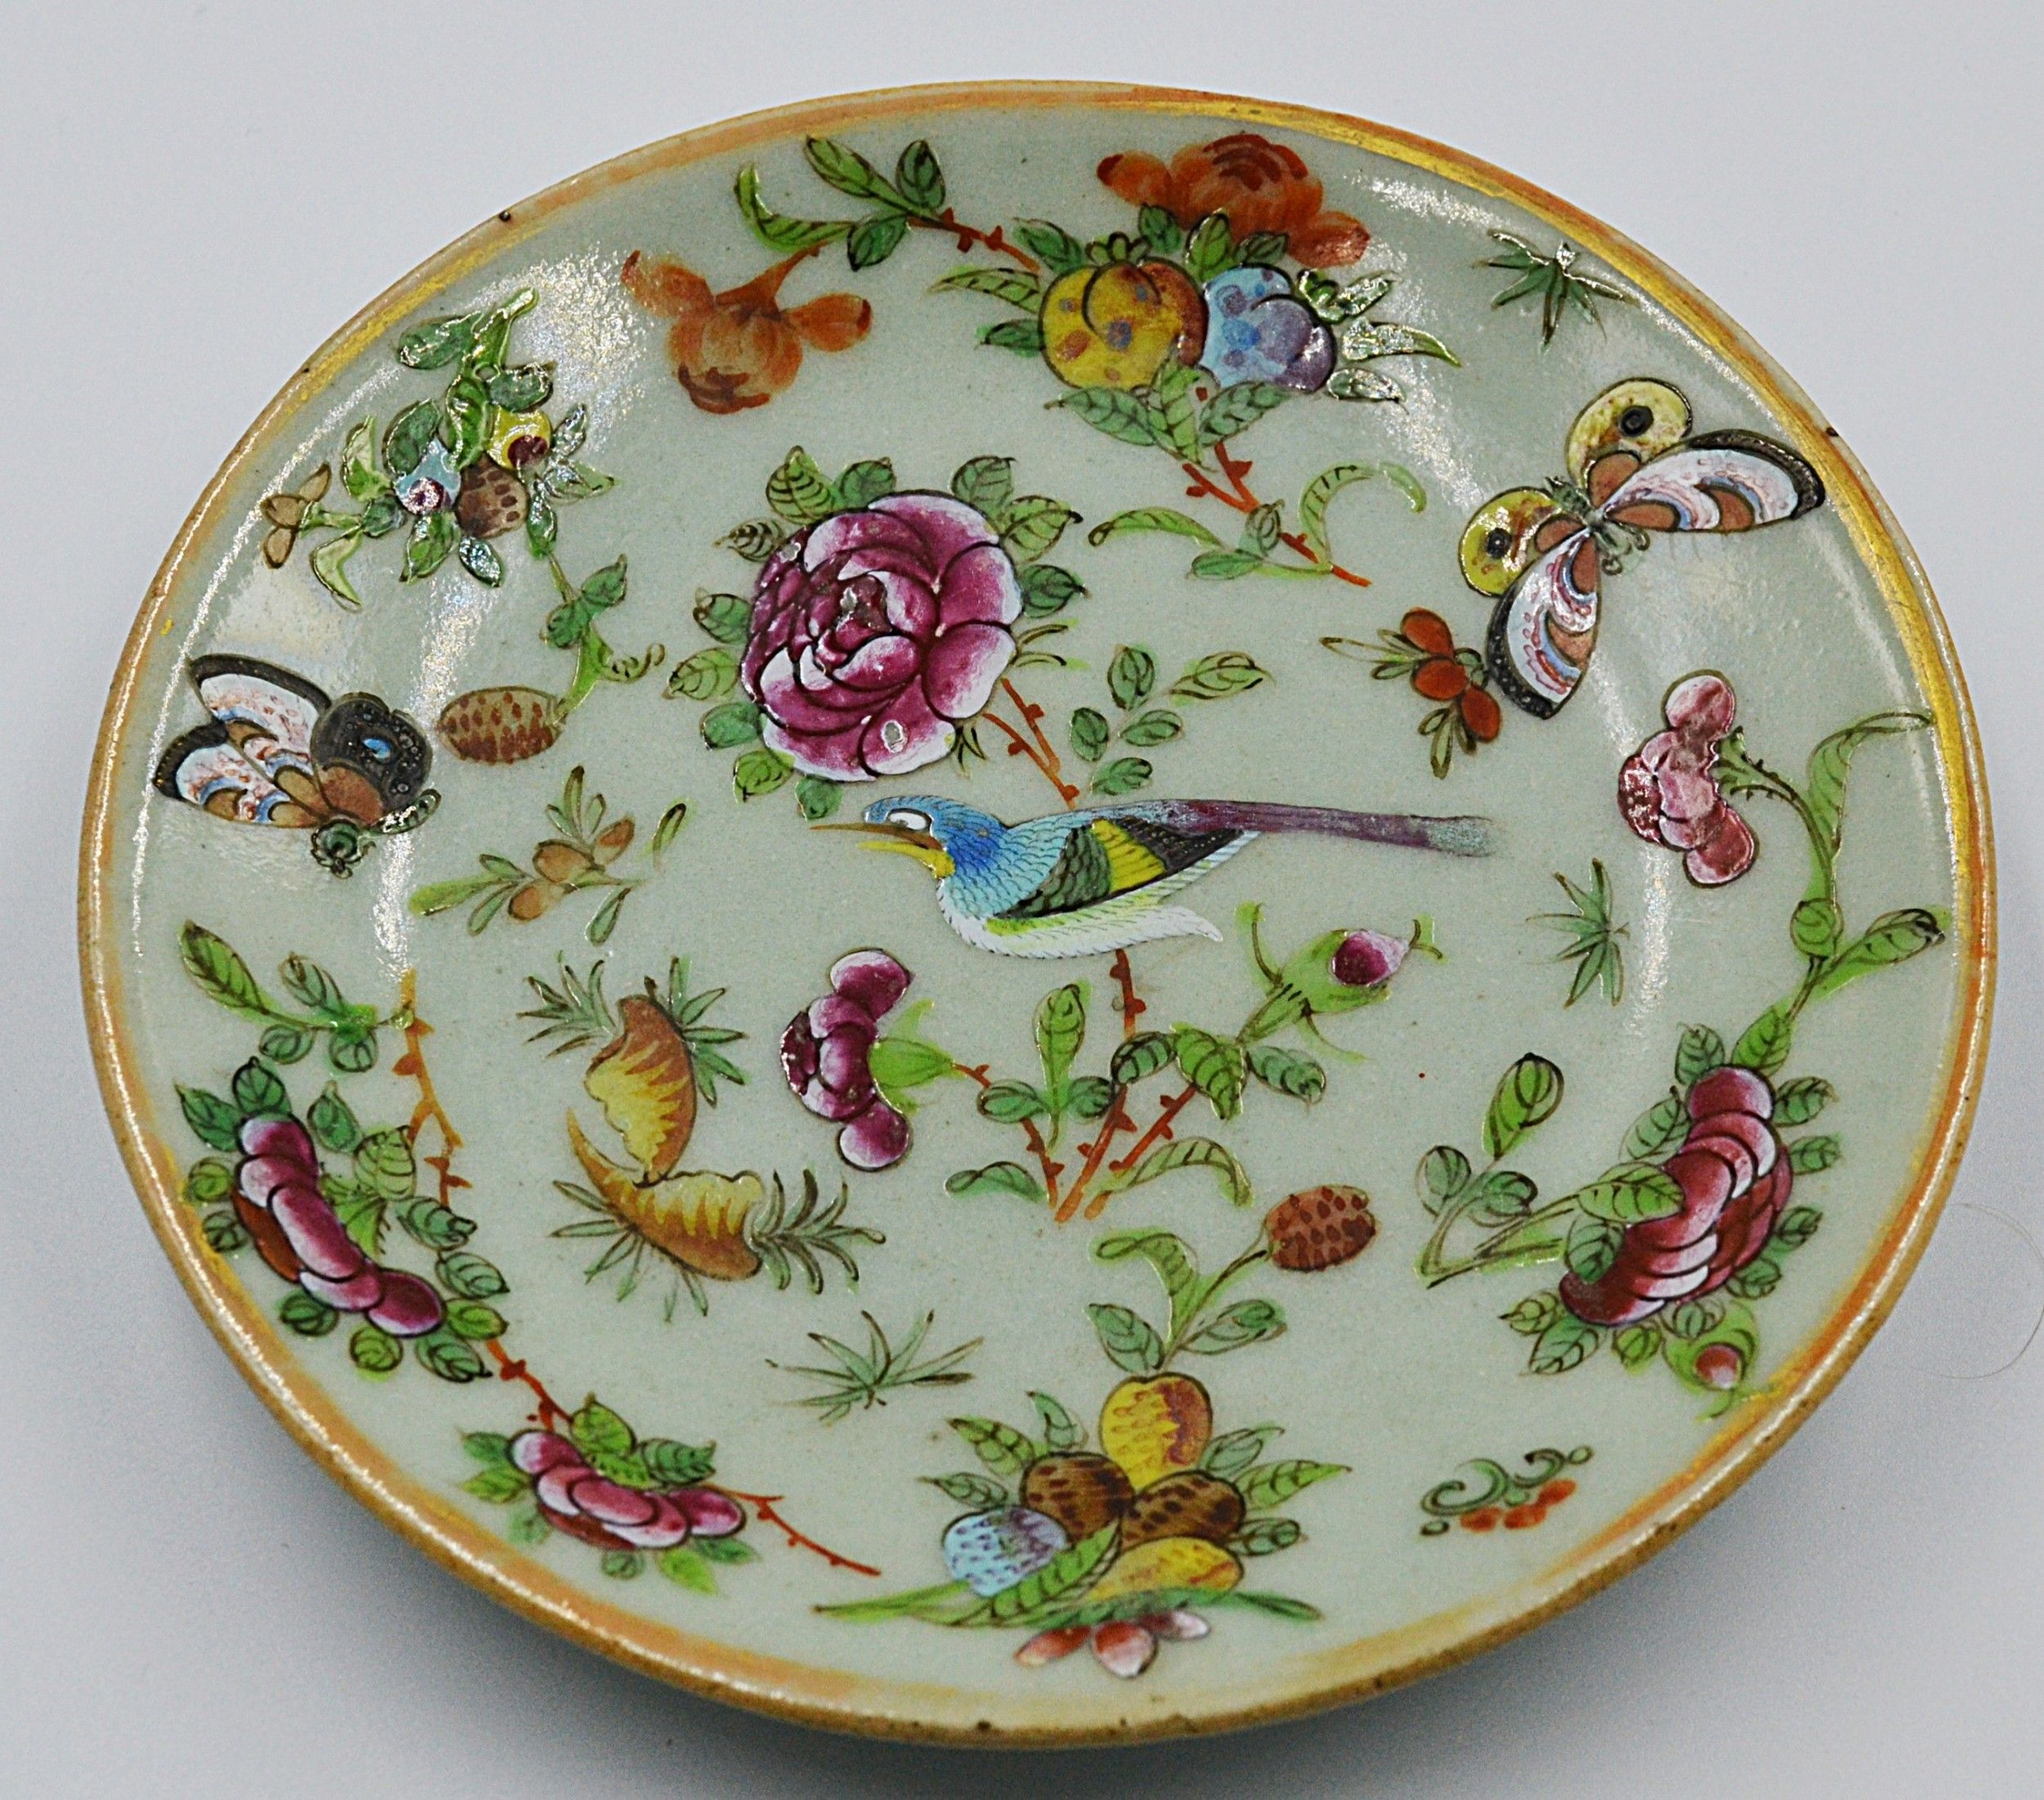 Chinese Cantonese Qing Period Famille Rose Plate Porcelain Butterflies Birds 554994 Sellingantiques Co Uk Antiques For Sale Antiques Rose Plated